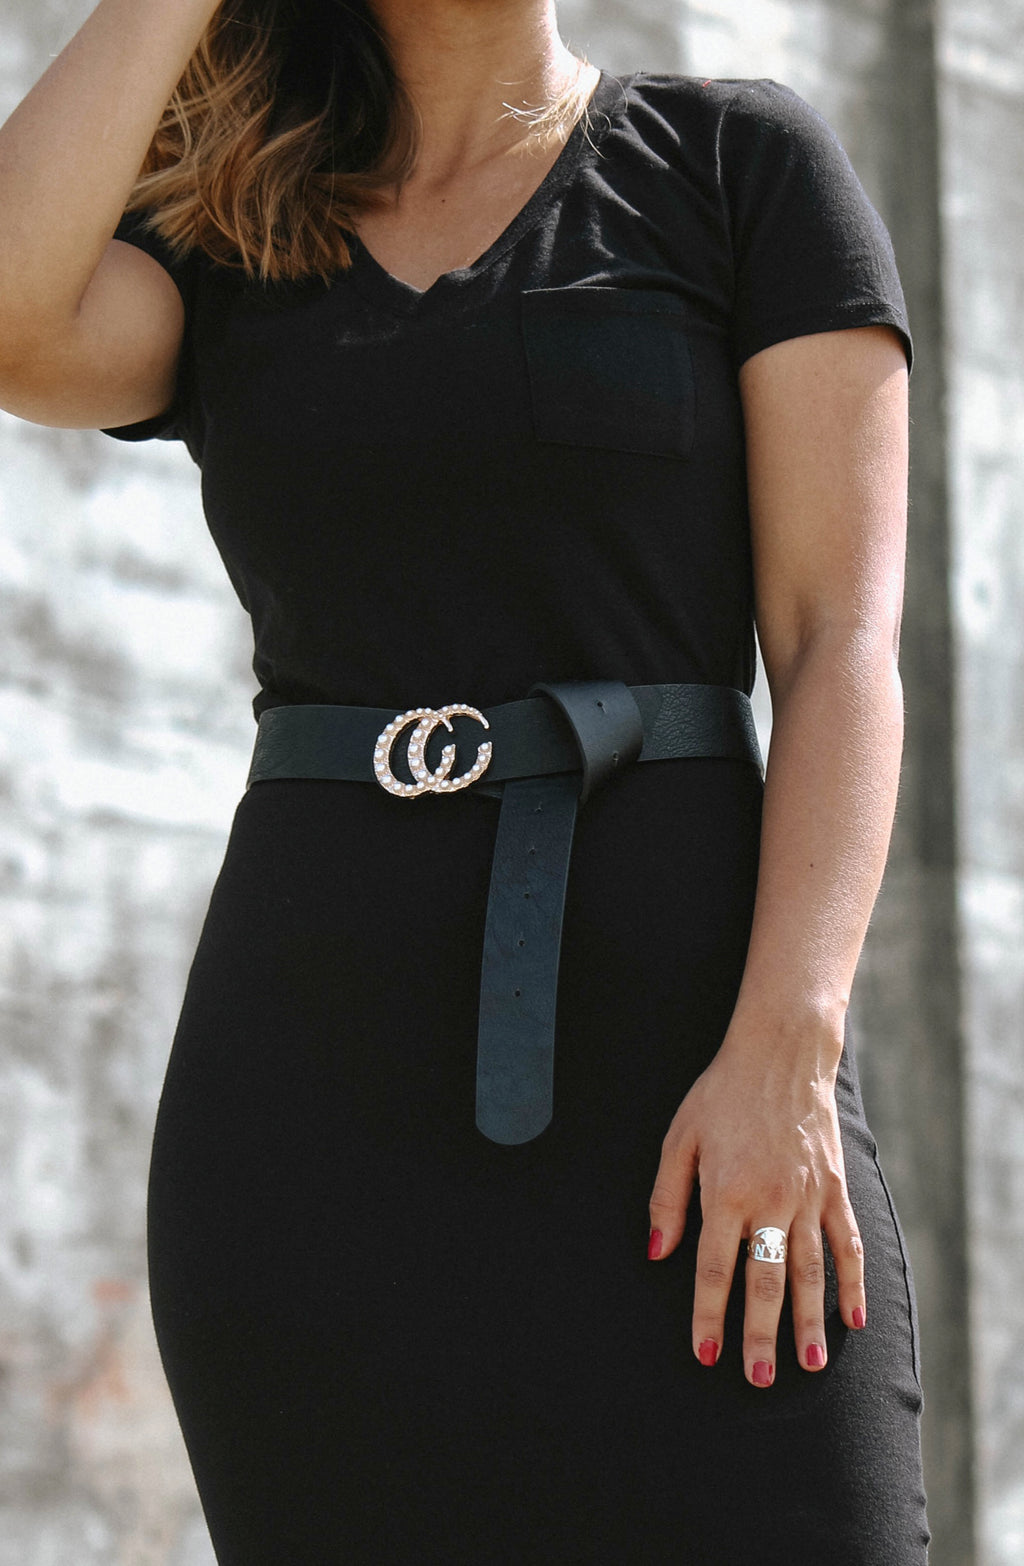 Pearl Encrusted CC Belt Black Styling